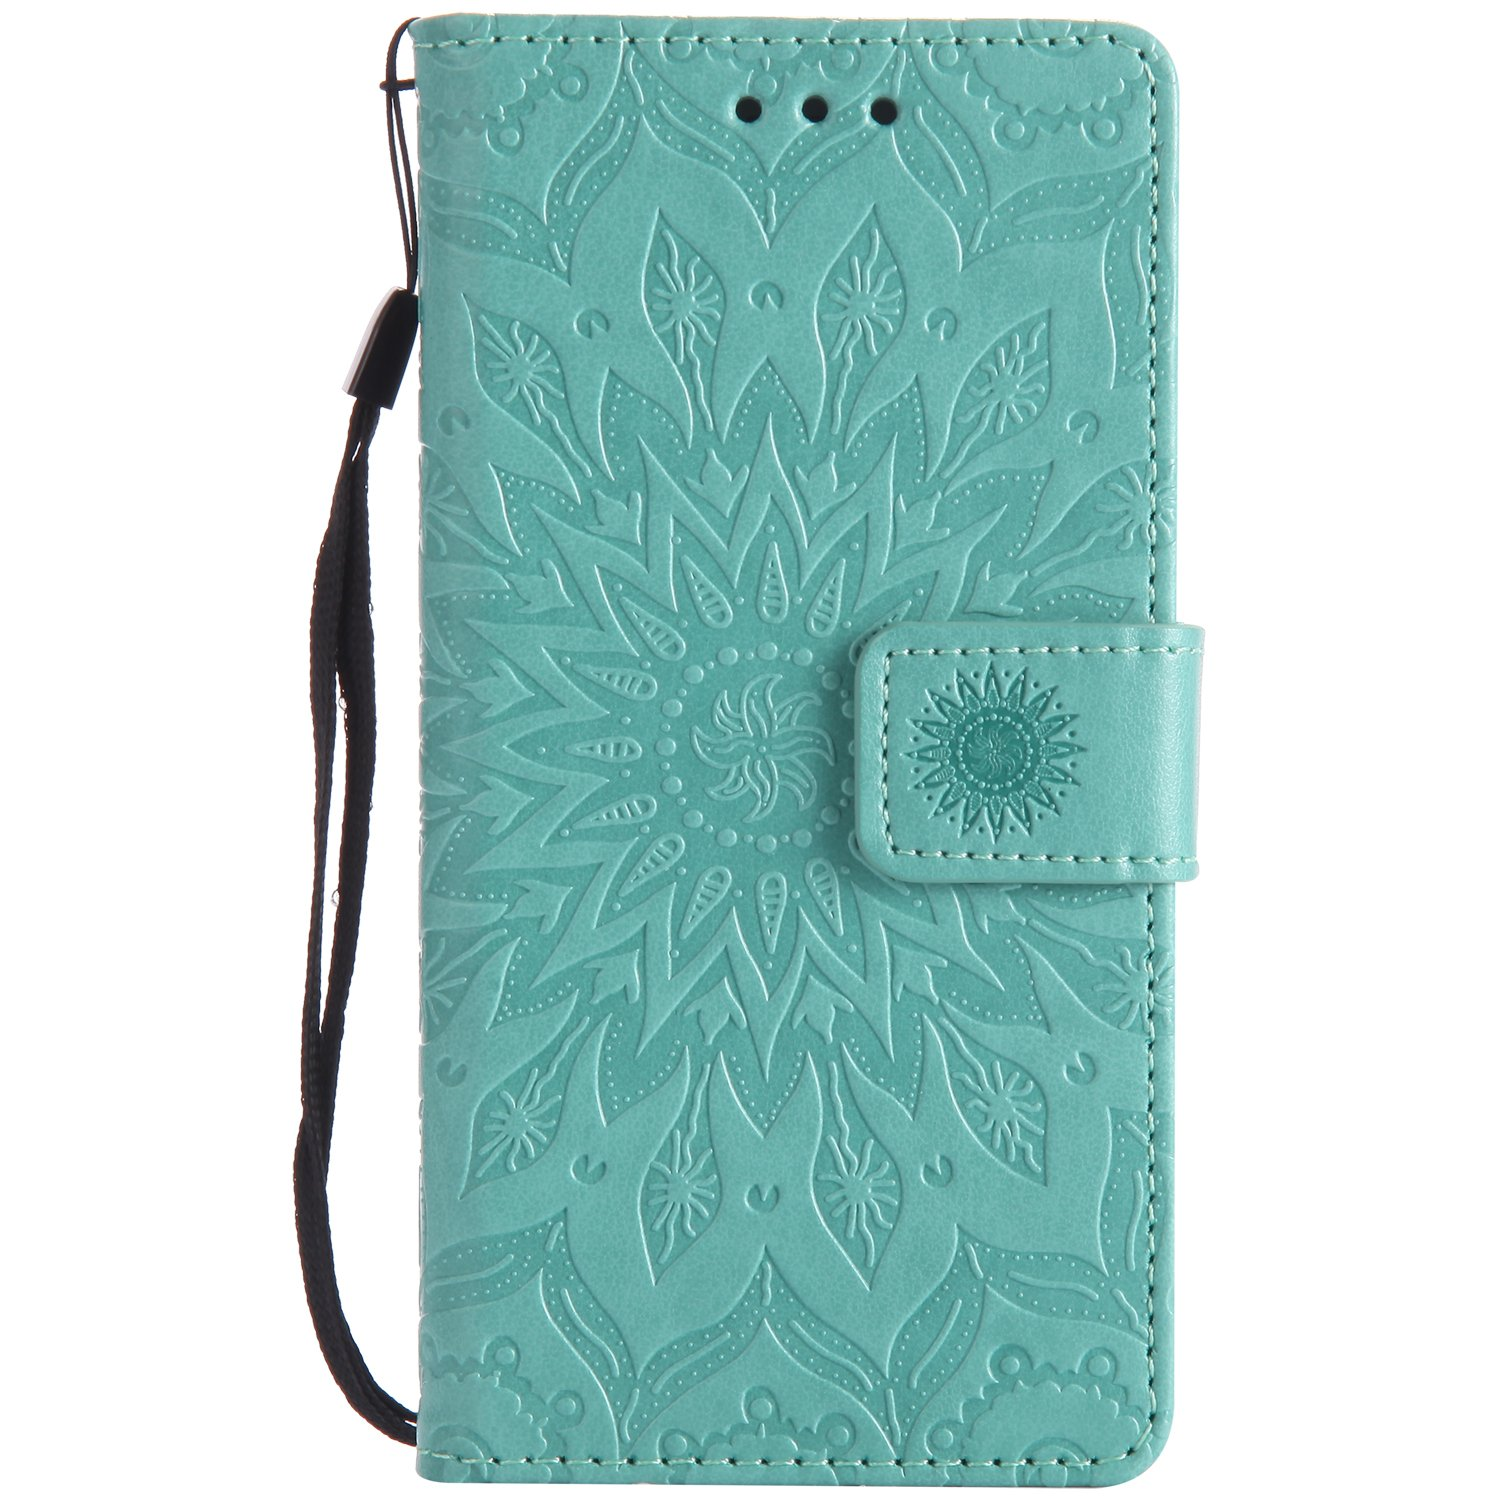 Sony Xperia M2 Case,Sony Xperia M2 Stand Case,Xperia M2 Wallet Flip Case,SKYMARS Sunflower Beautiful Art Painted Pattern Embossing PU Leather Fold Wallet Pouch Case Flip Stand Credit Card ID Book Style Protective Case Cover for Sony Xperia M2 Sunflower Blu